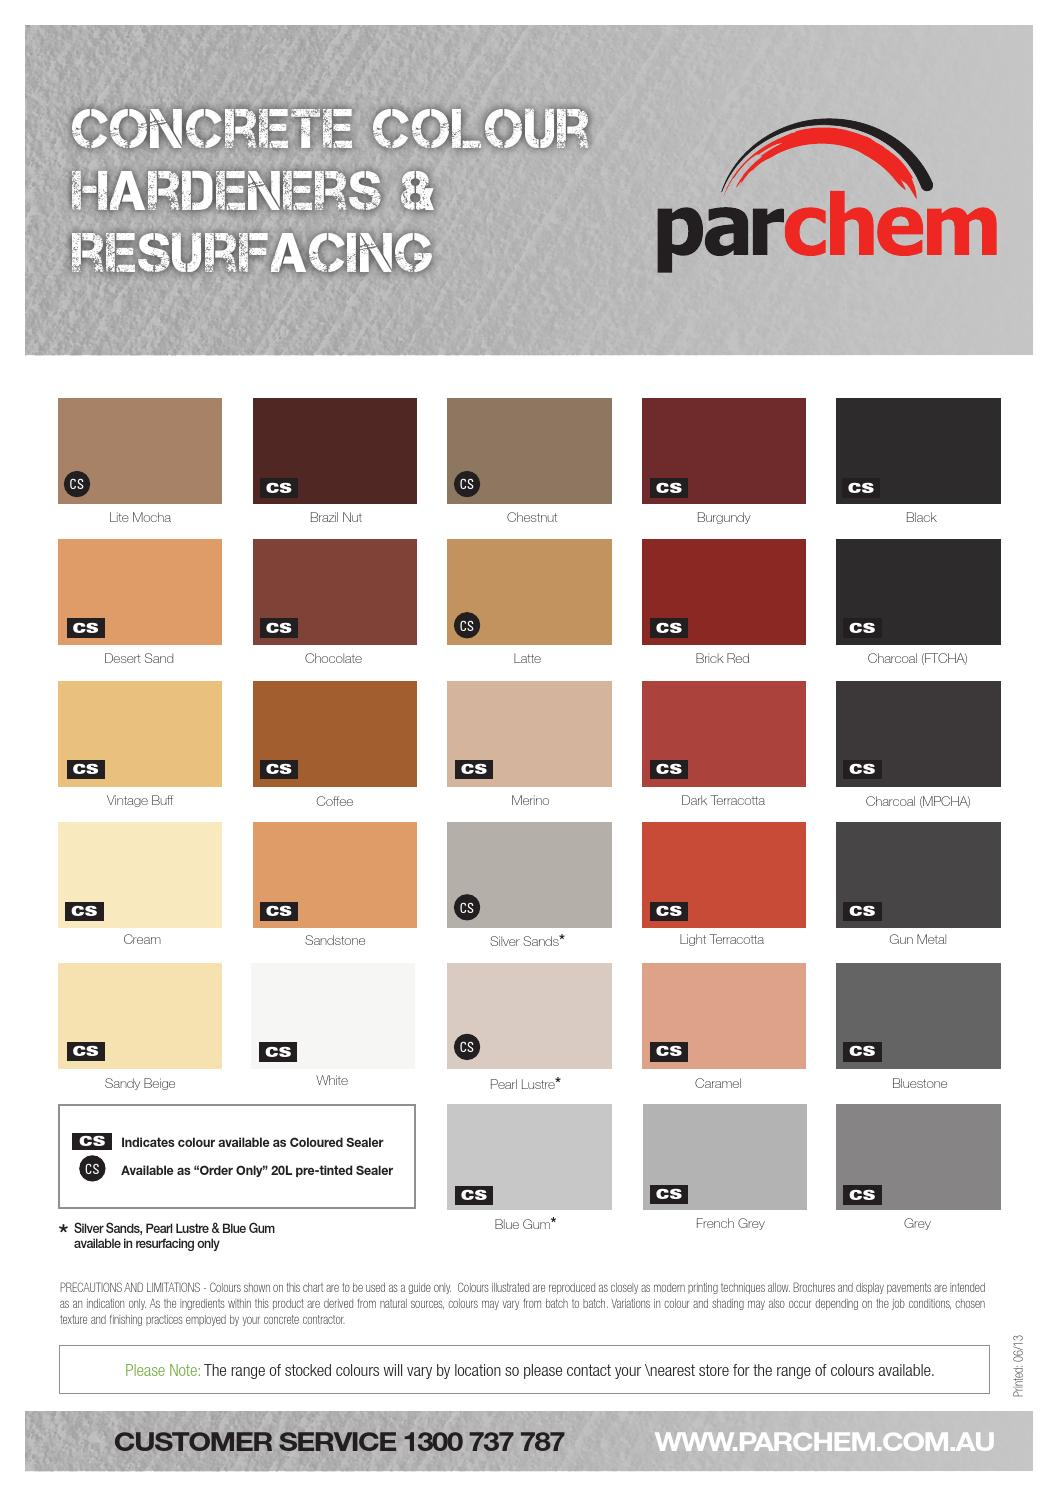 Parchem Colour Hardeners And Resurfacing Colour Chart By